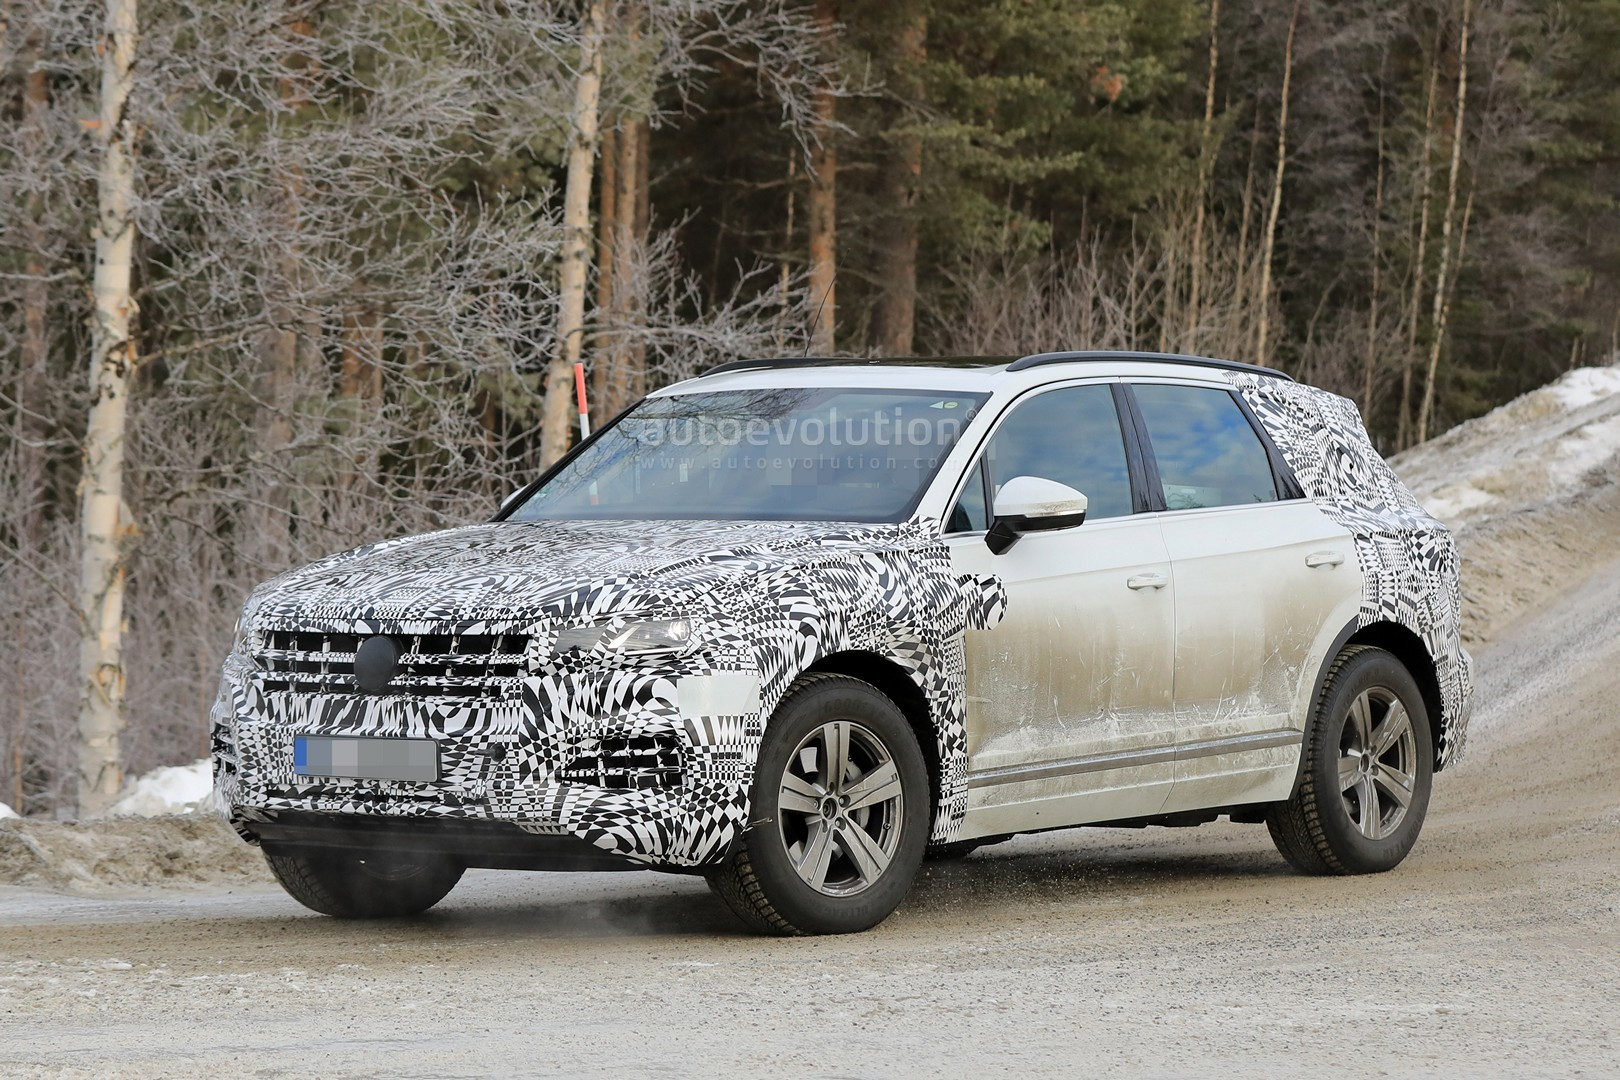 2018 Volkswagen Touareg Reportedly Set For Debut In April